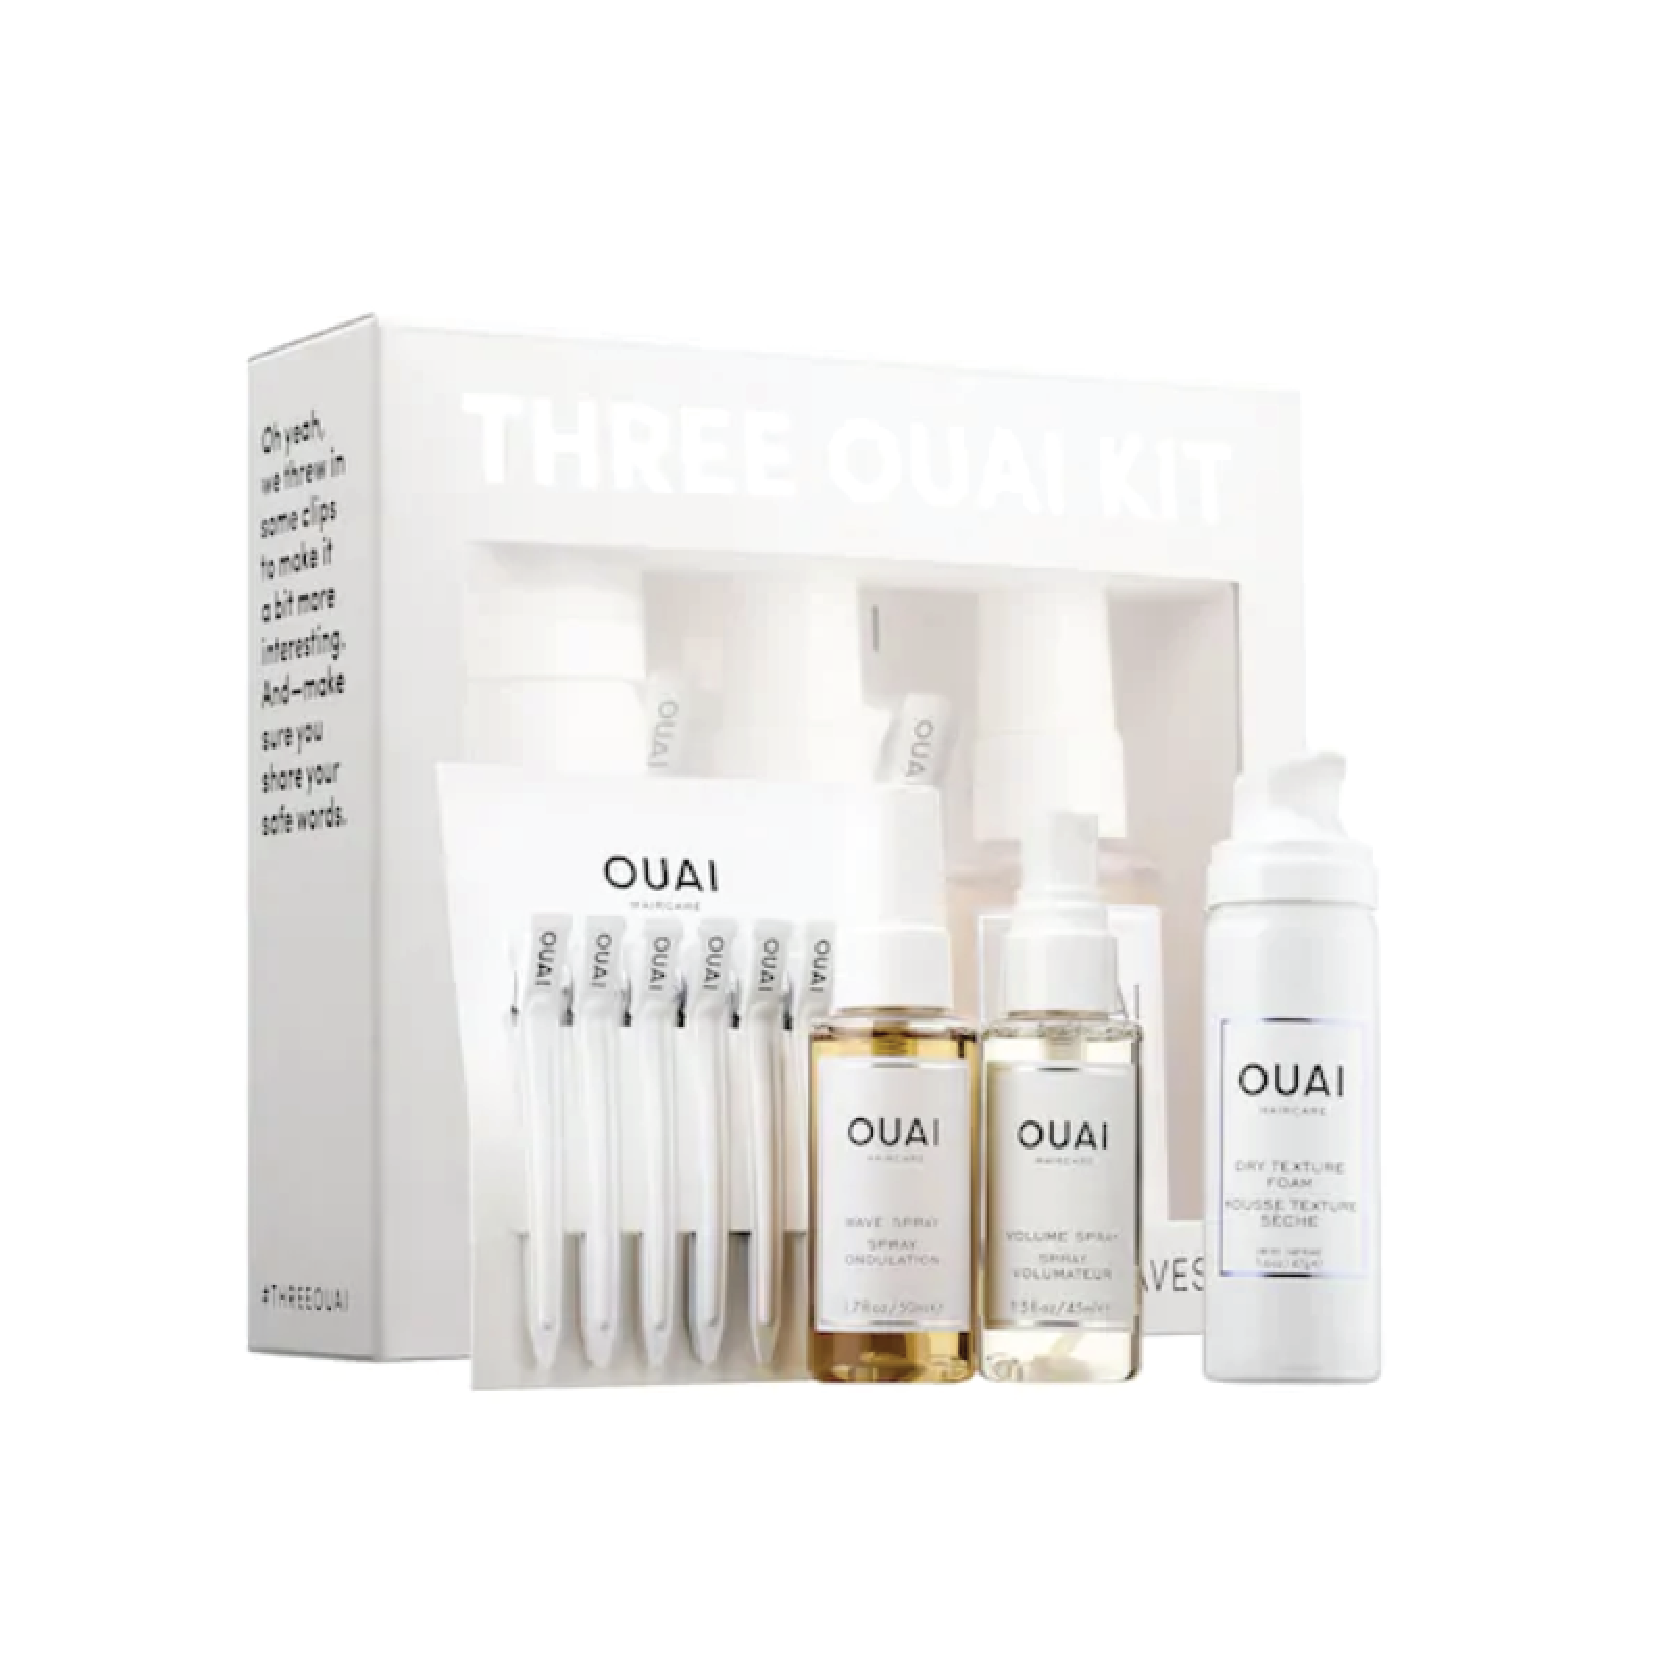 Ouai Three Ouai Kit - $25 at SephoraThis mini set includes a dry texture foam, wave spray, volume spray and styling clips. Honestly such a great deal for a stocking stuffer.